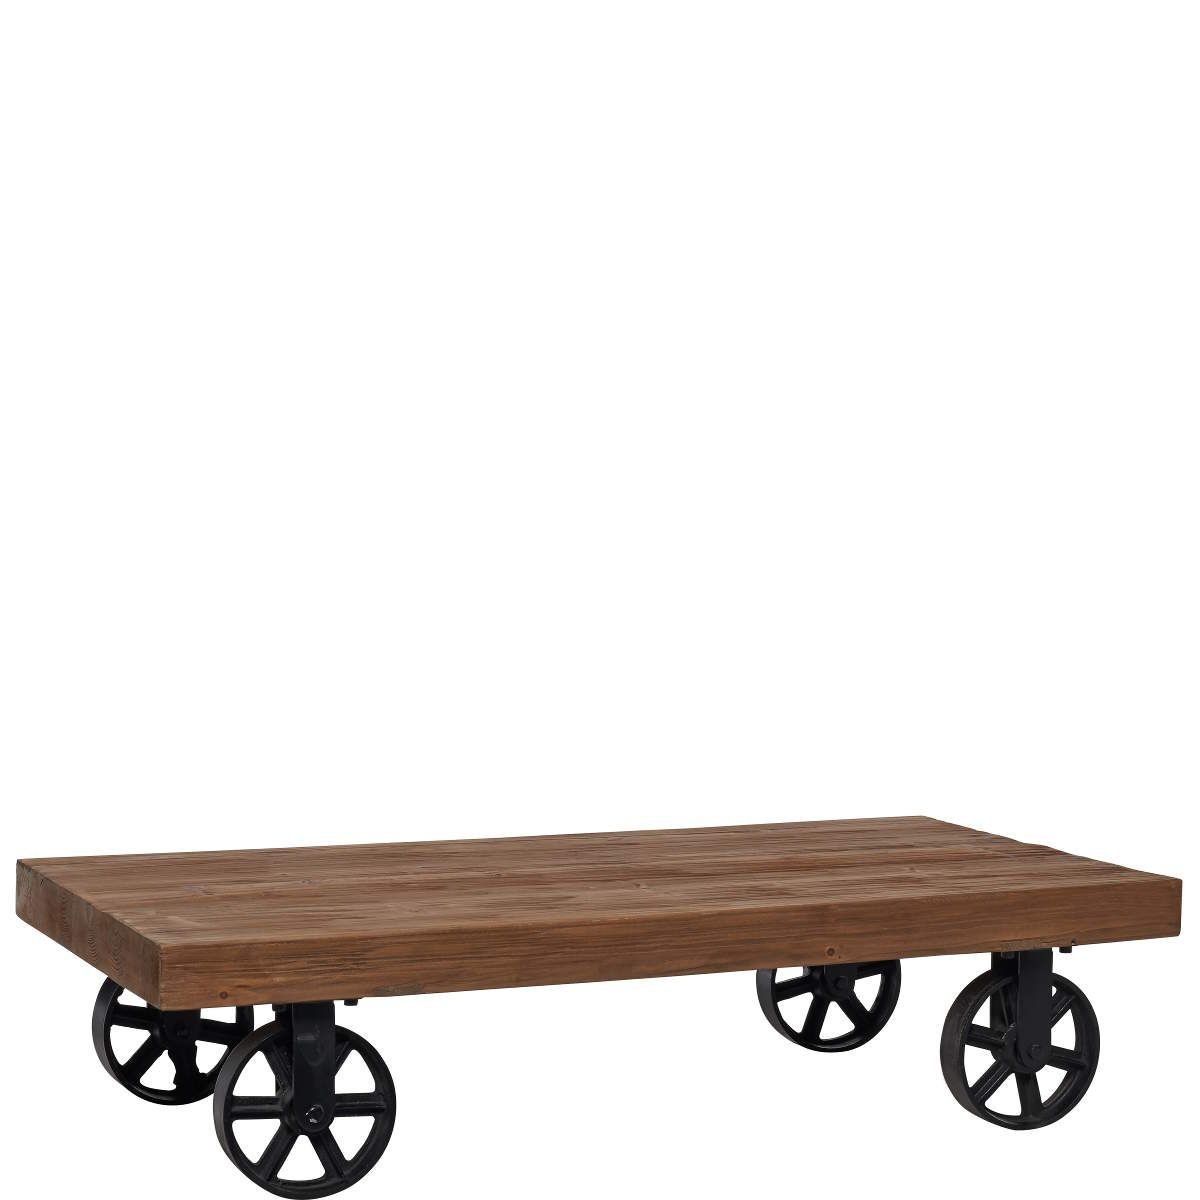 Wagon Coffee Table With Wheels Butlers England Coffee Table